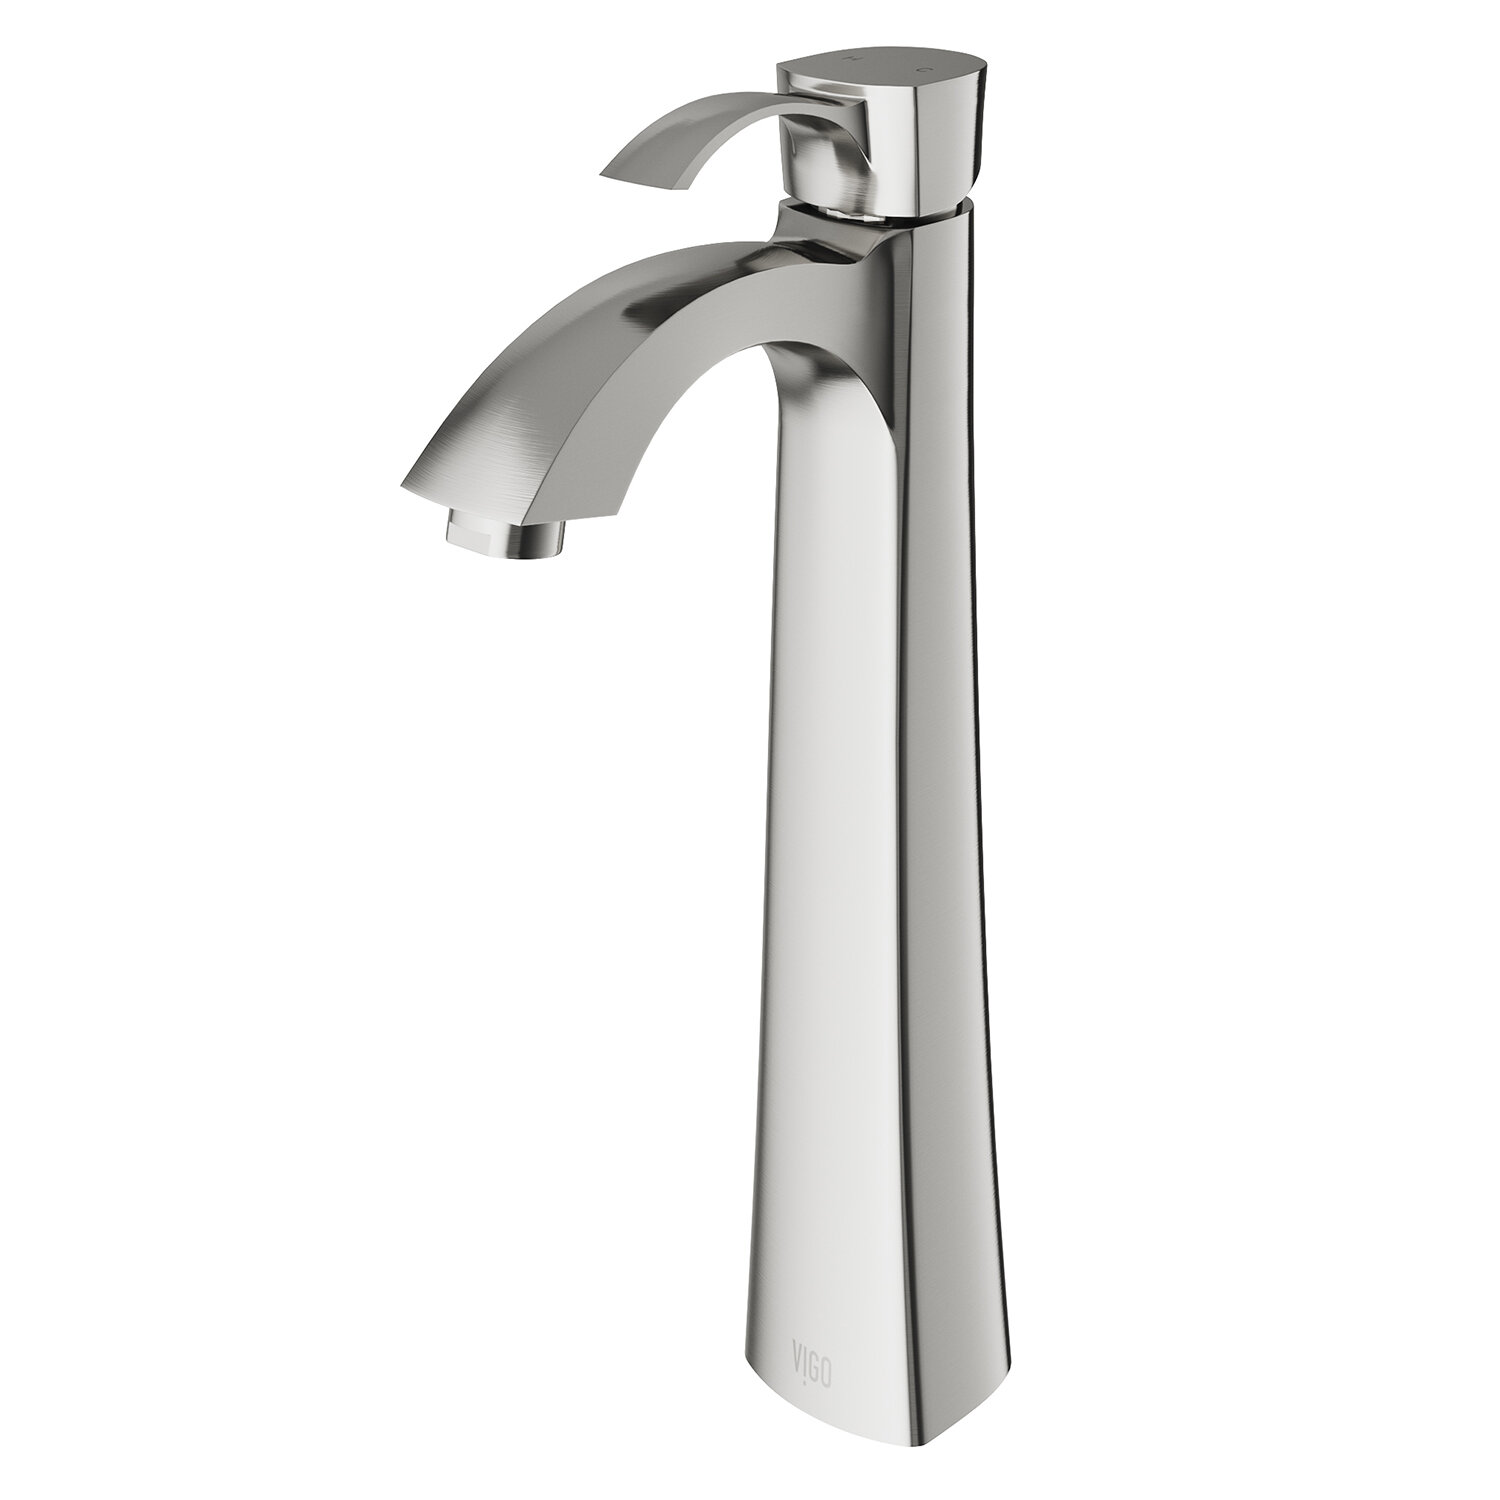 VIGO Otis Single Hole Bathroom Faucet & Reviews | Wayfair